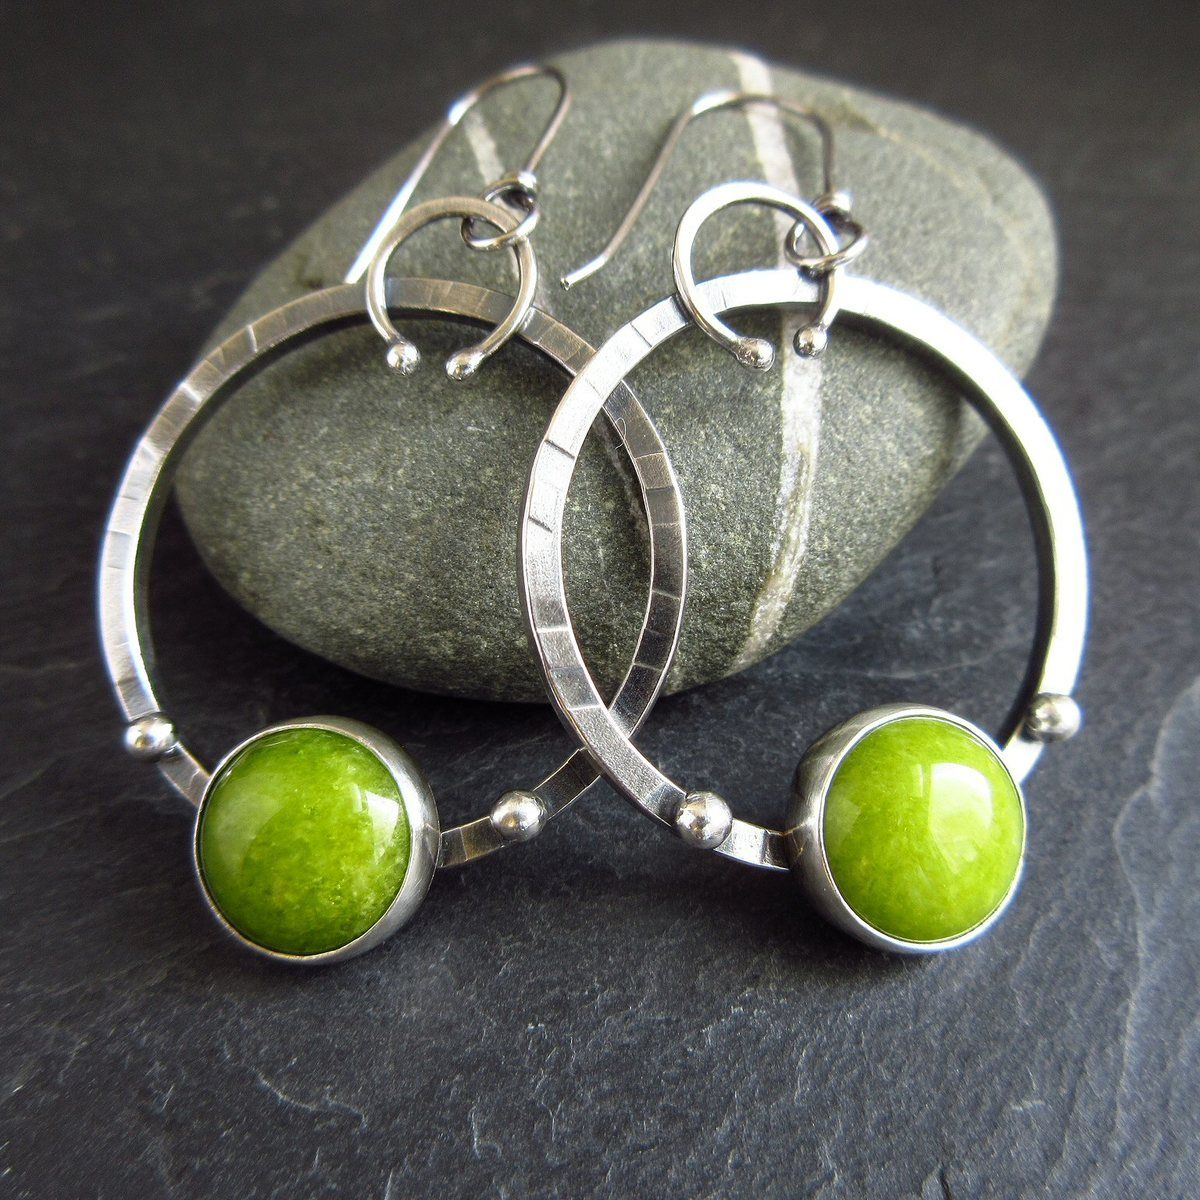 Sterling silver hoops with green calcite